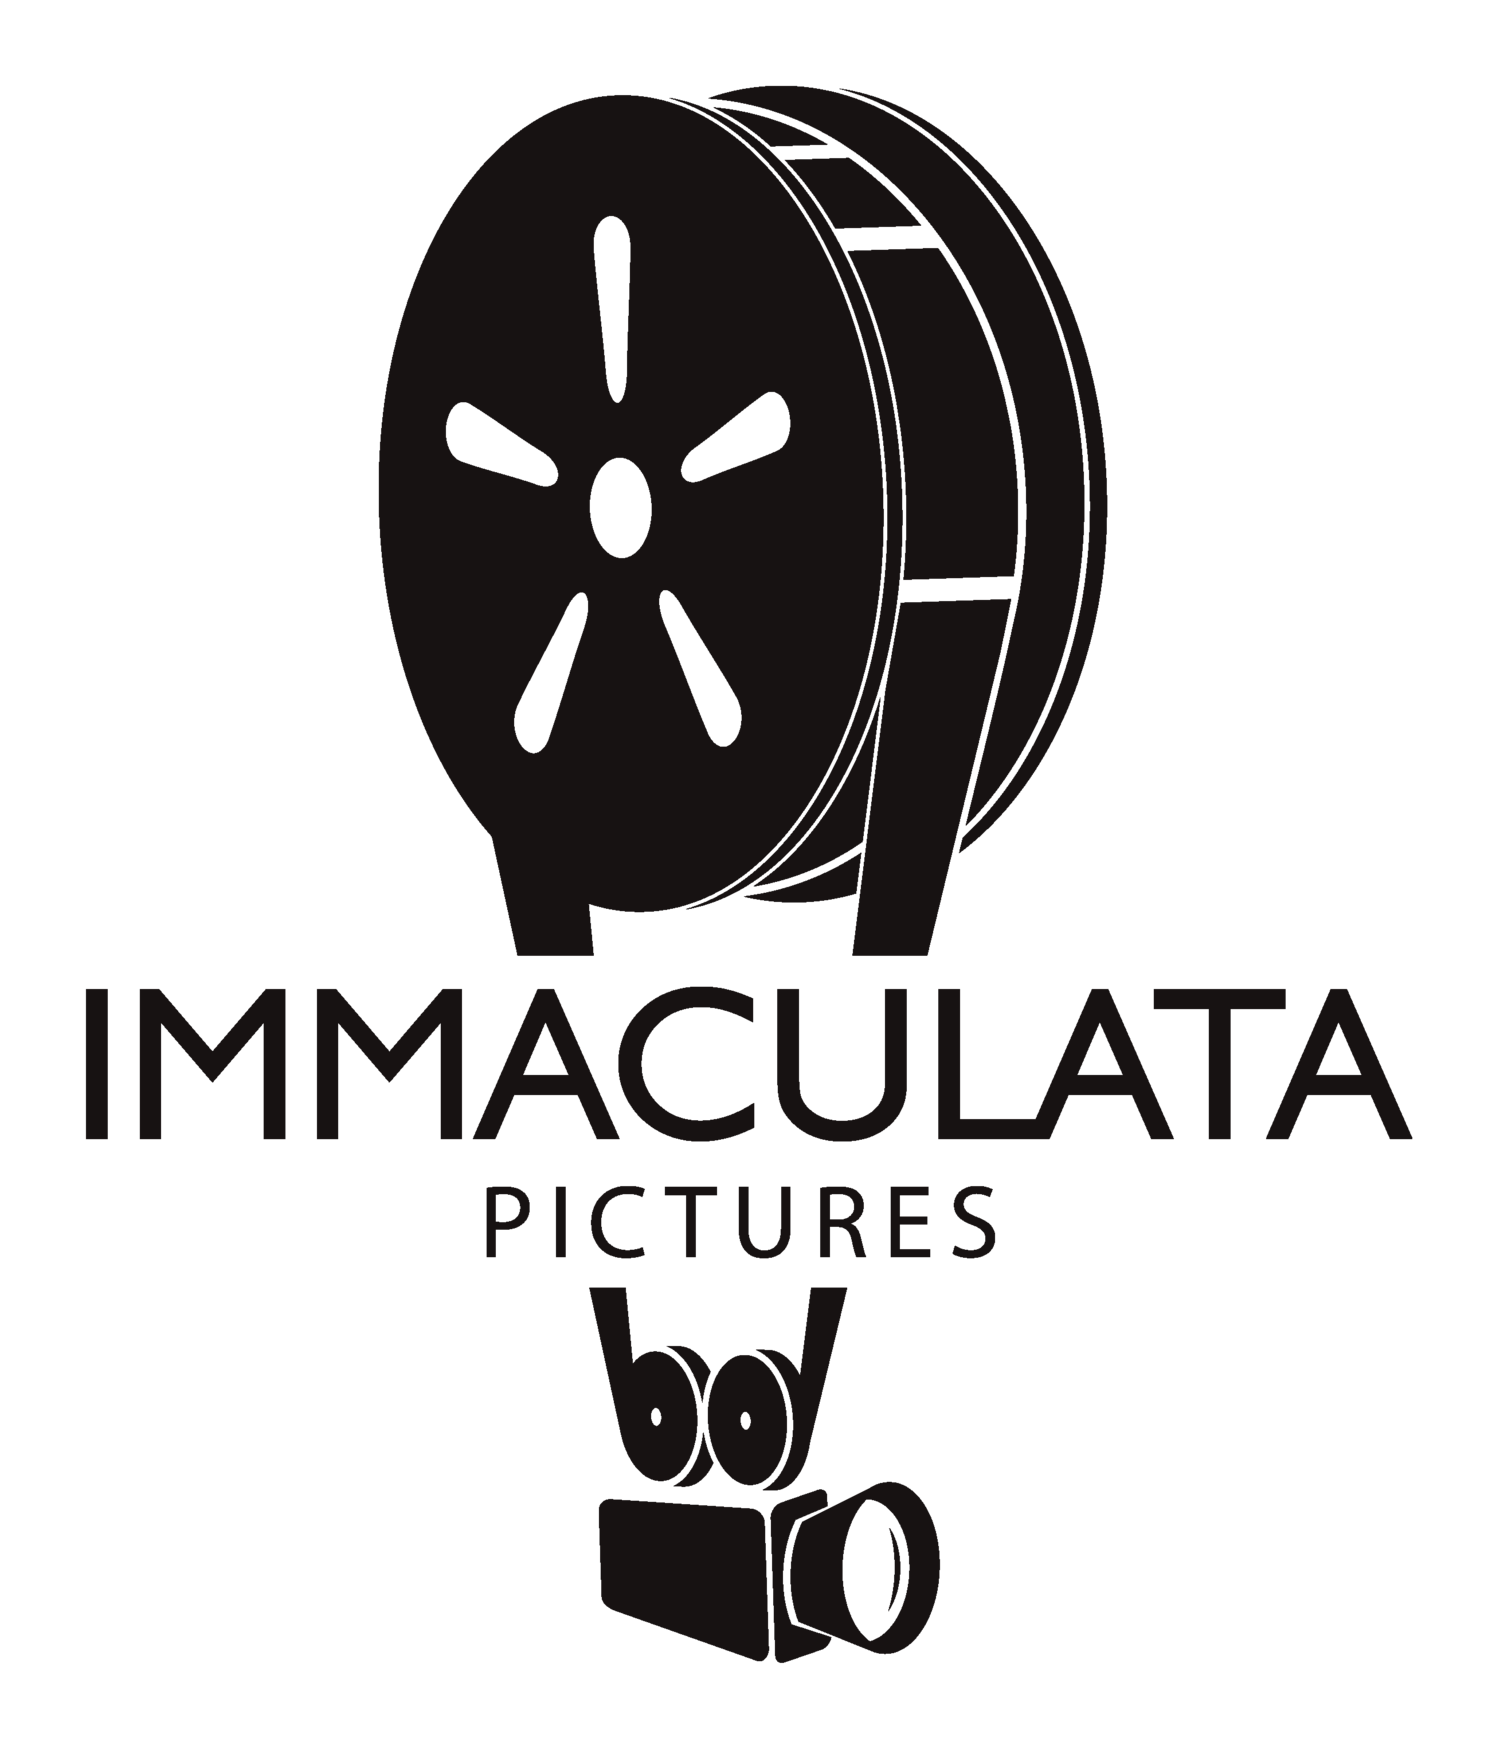 Immaculata Pictures